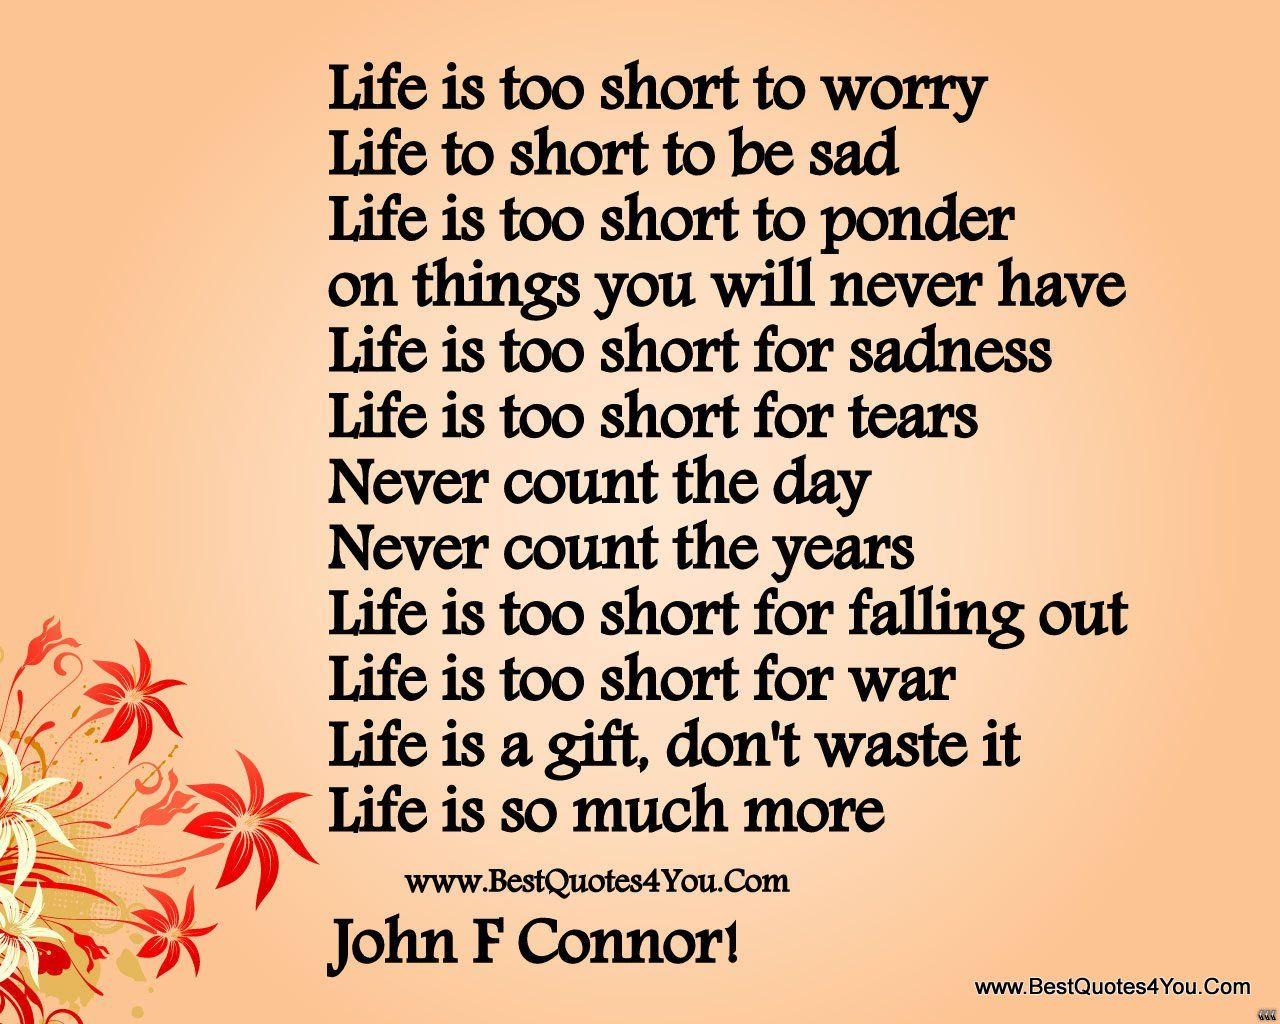 Poems And Quotes About Life Poem Quotes About Life  Google Search  Sayings  Pinterest